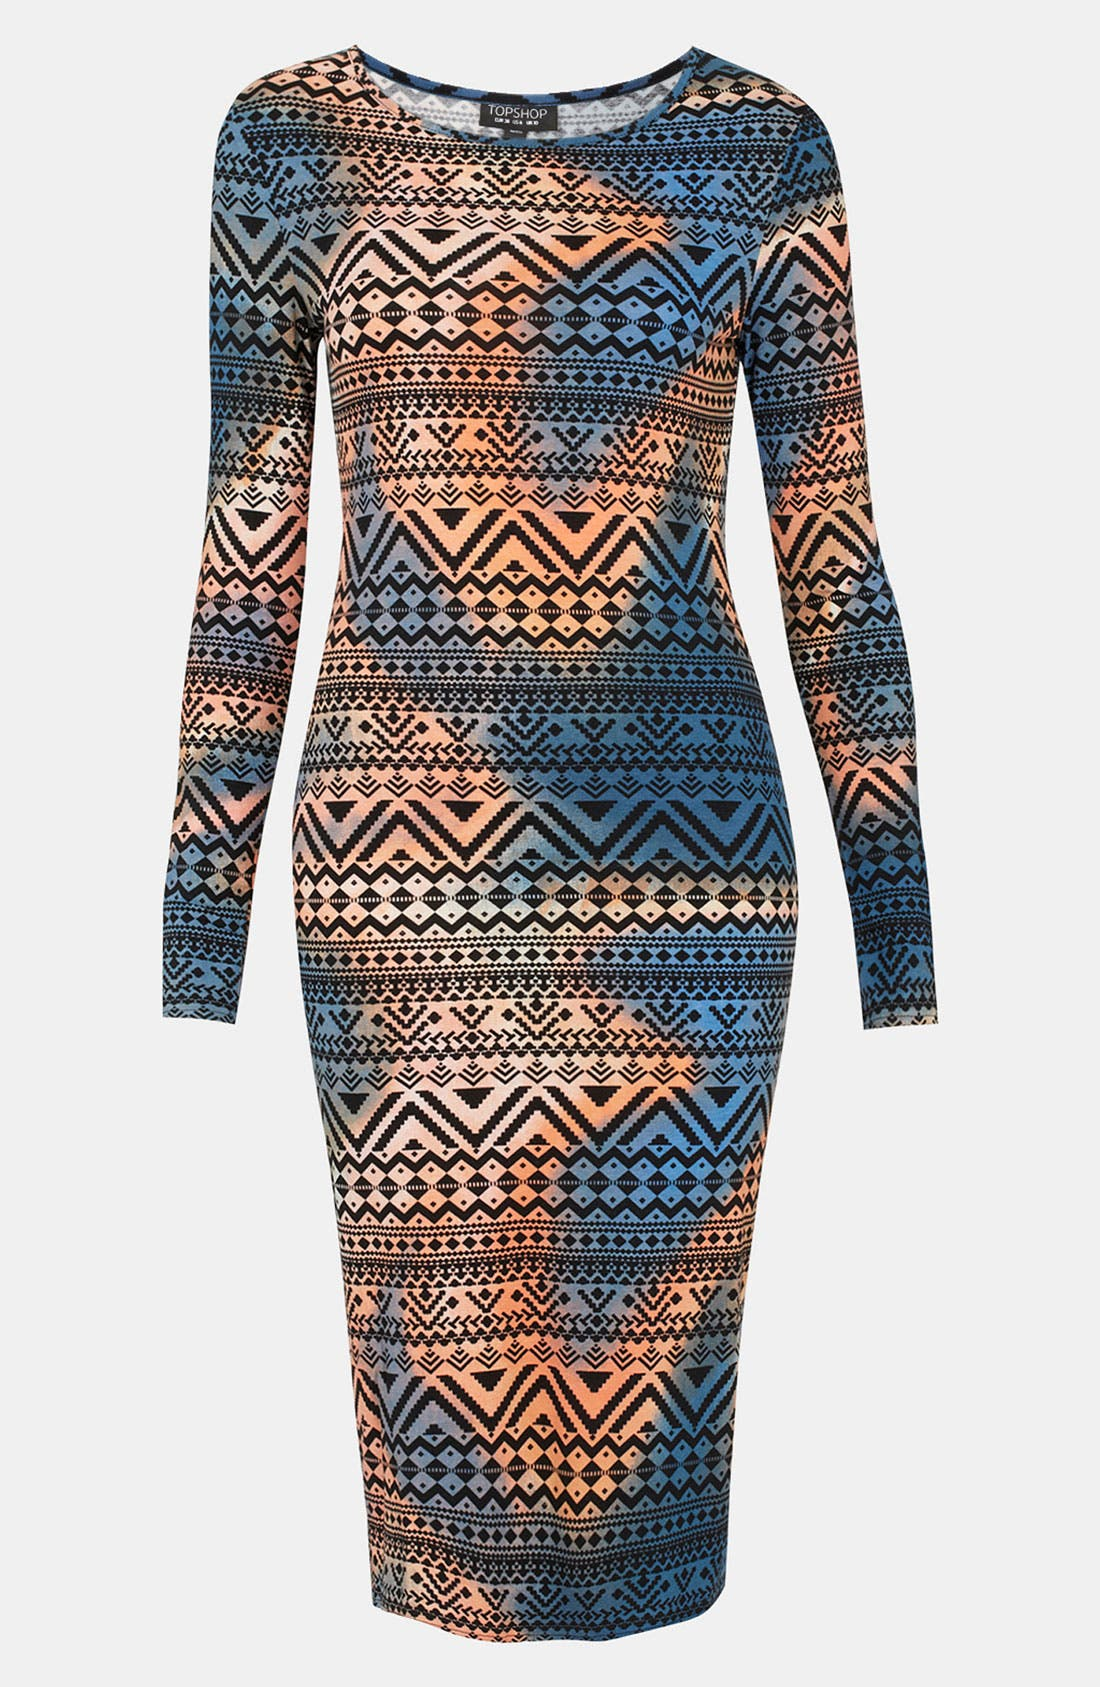 Alternate Image 1 Selected - Topshop Tie Dyed Aztec Print Body-Con Dress